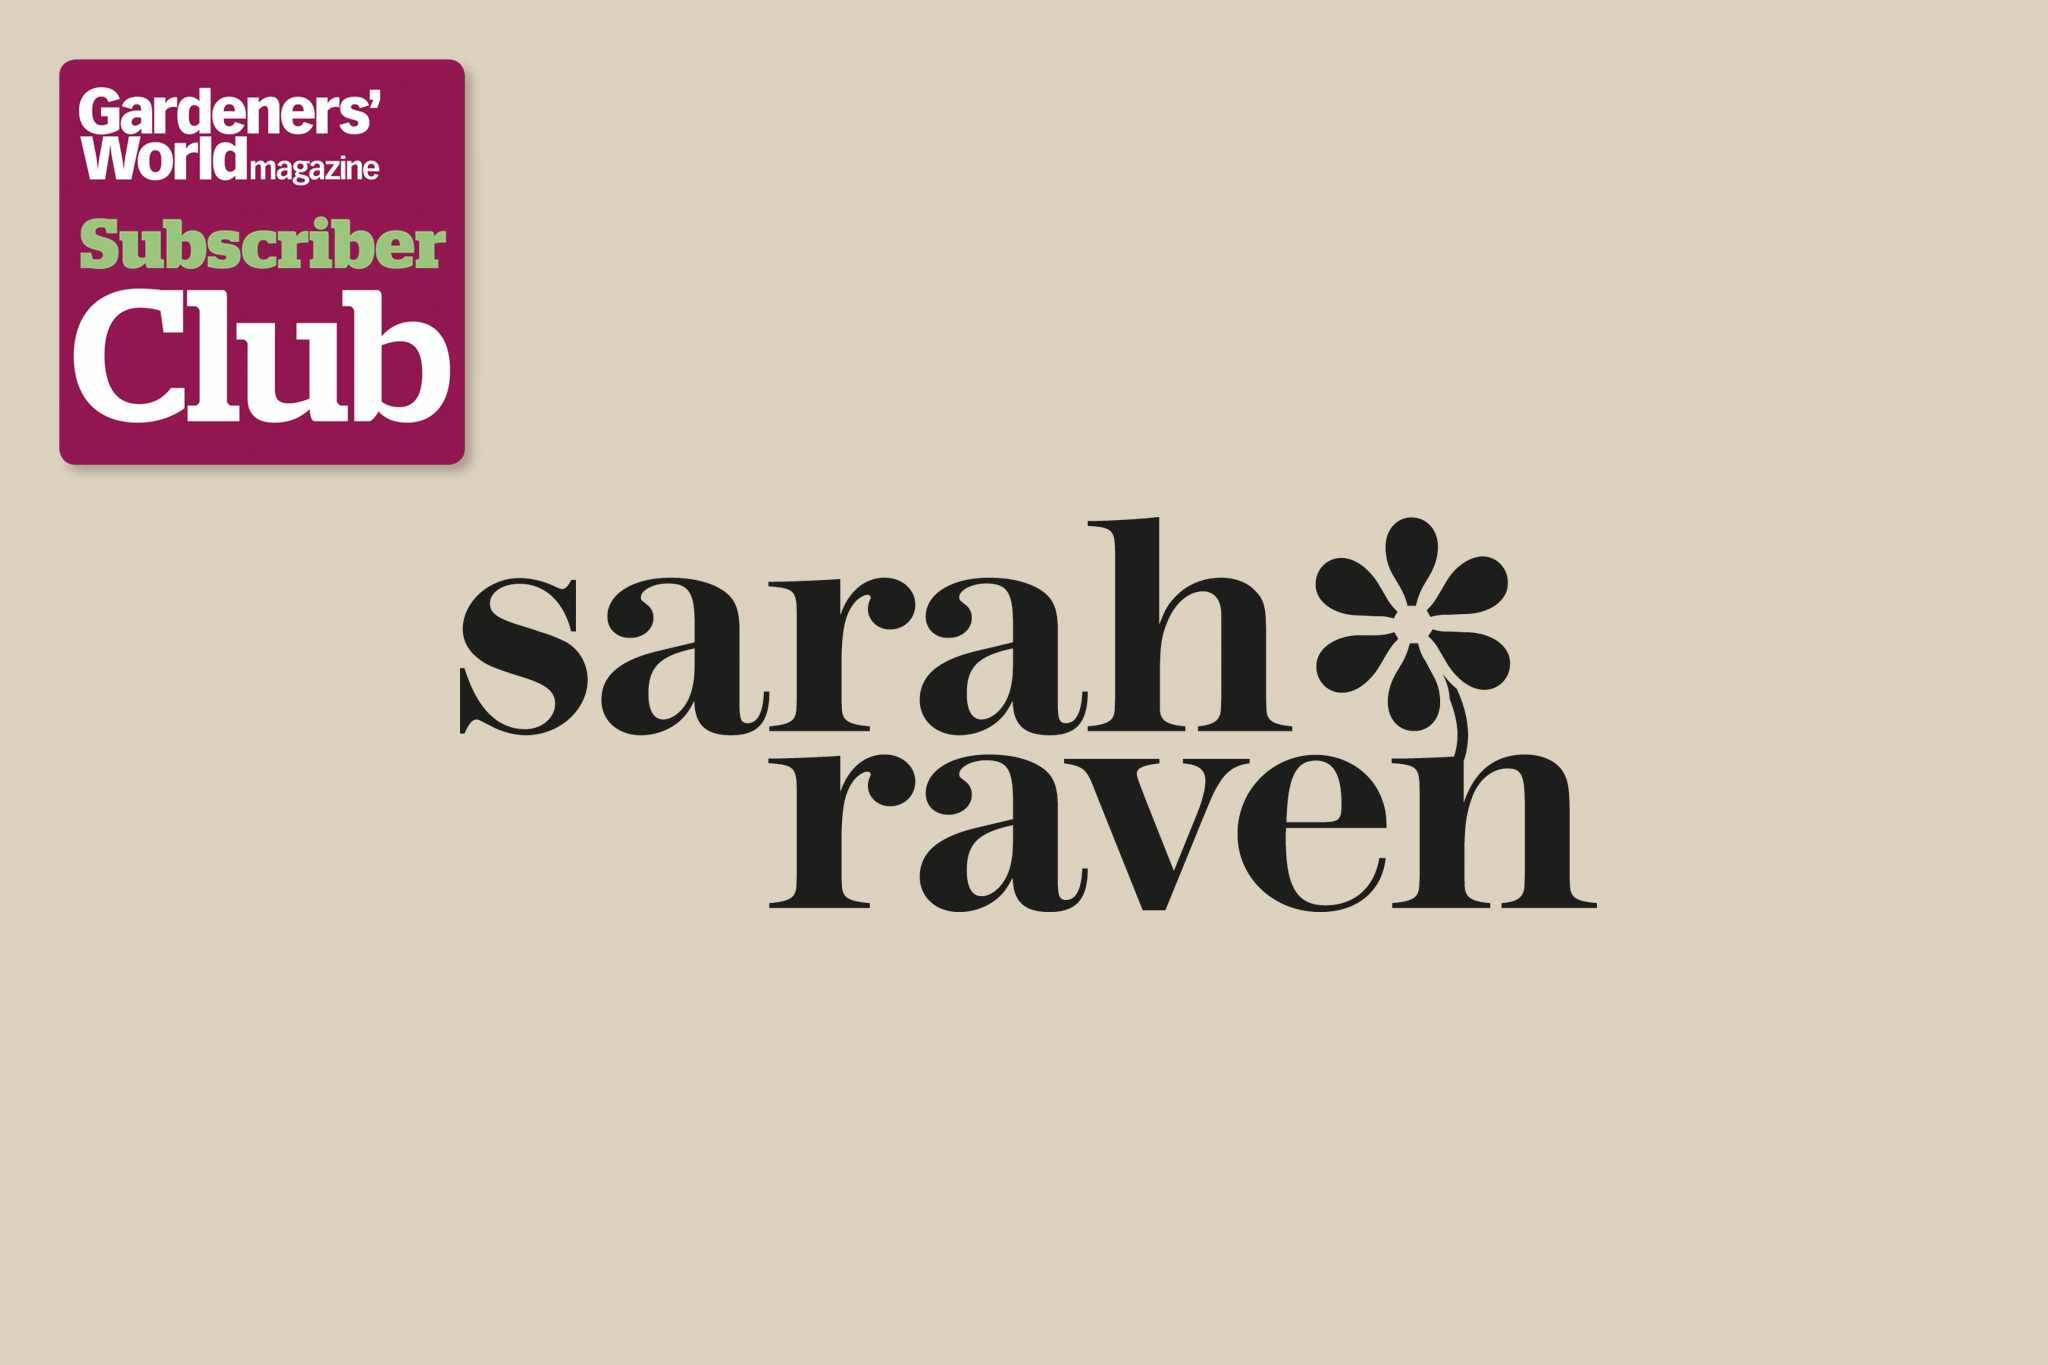 Sarah RavenGarden Bird Supplies BBC Gardeners' World Magazine Subscriber Club discount